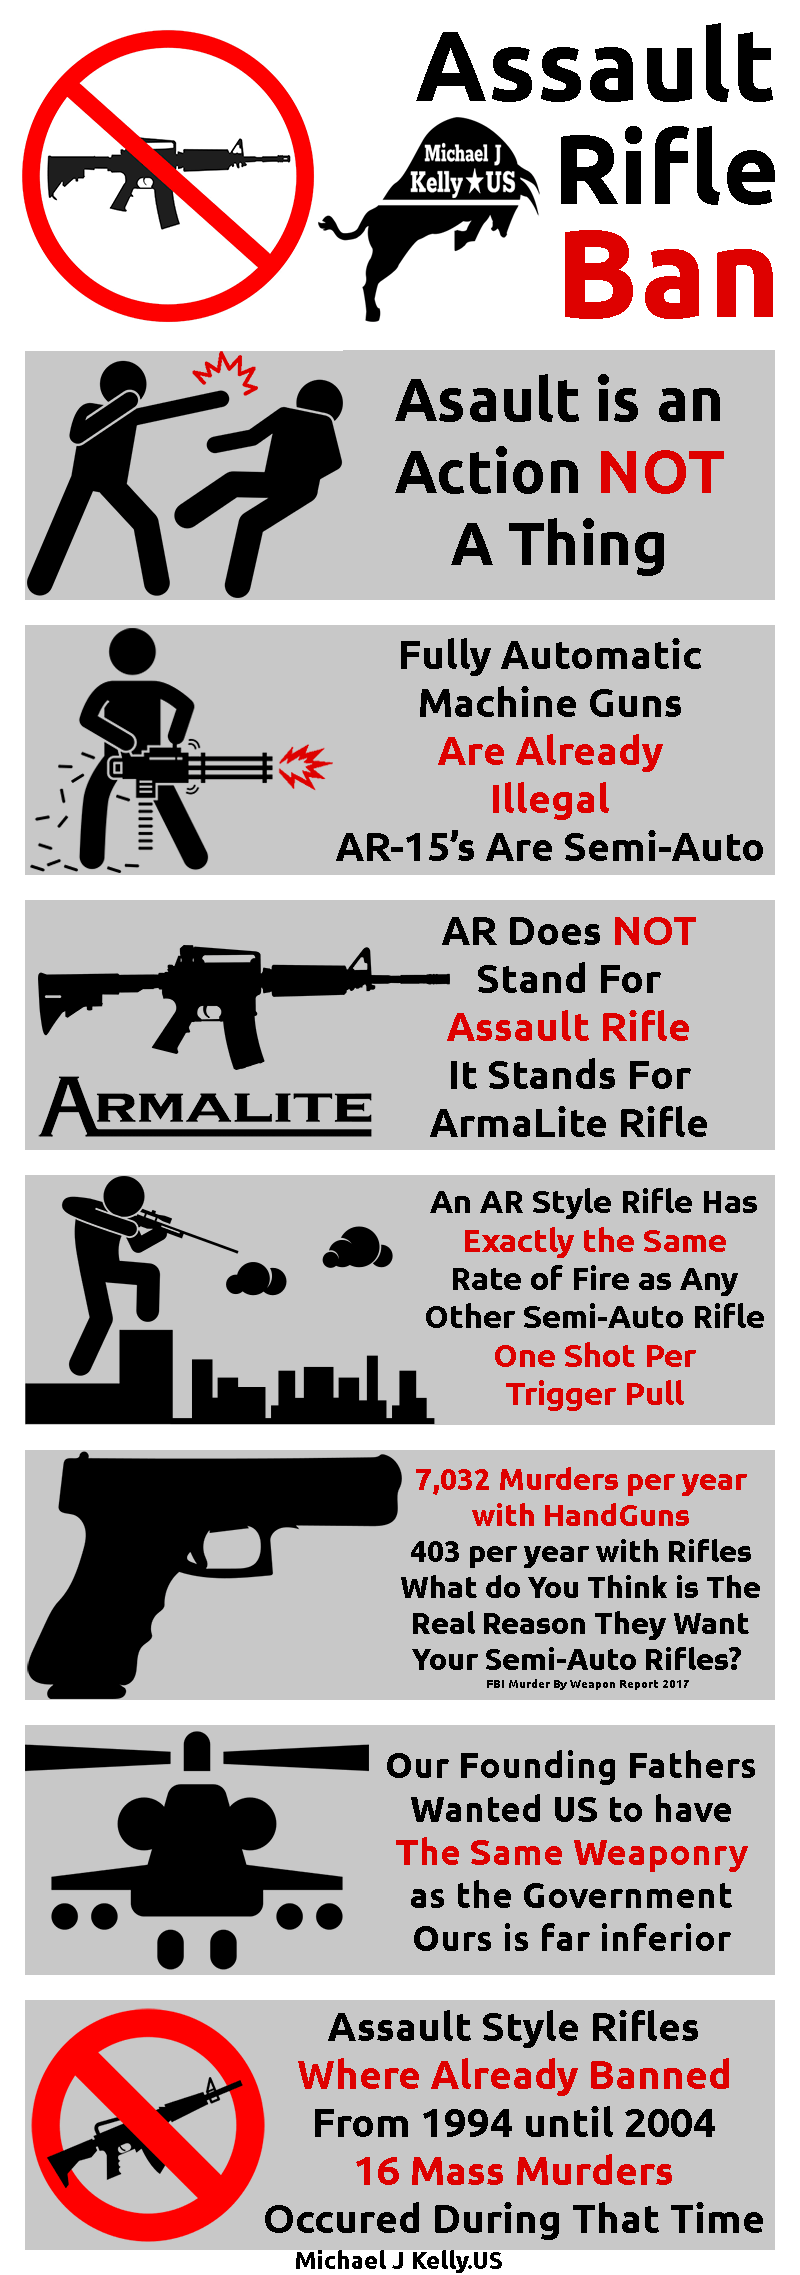 ar 15 assault rifle ban facts infographic